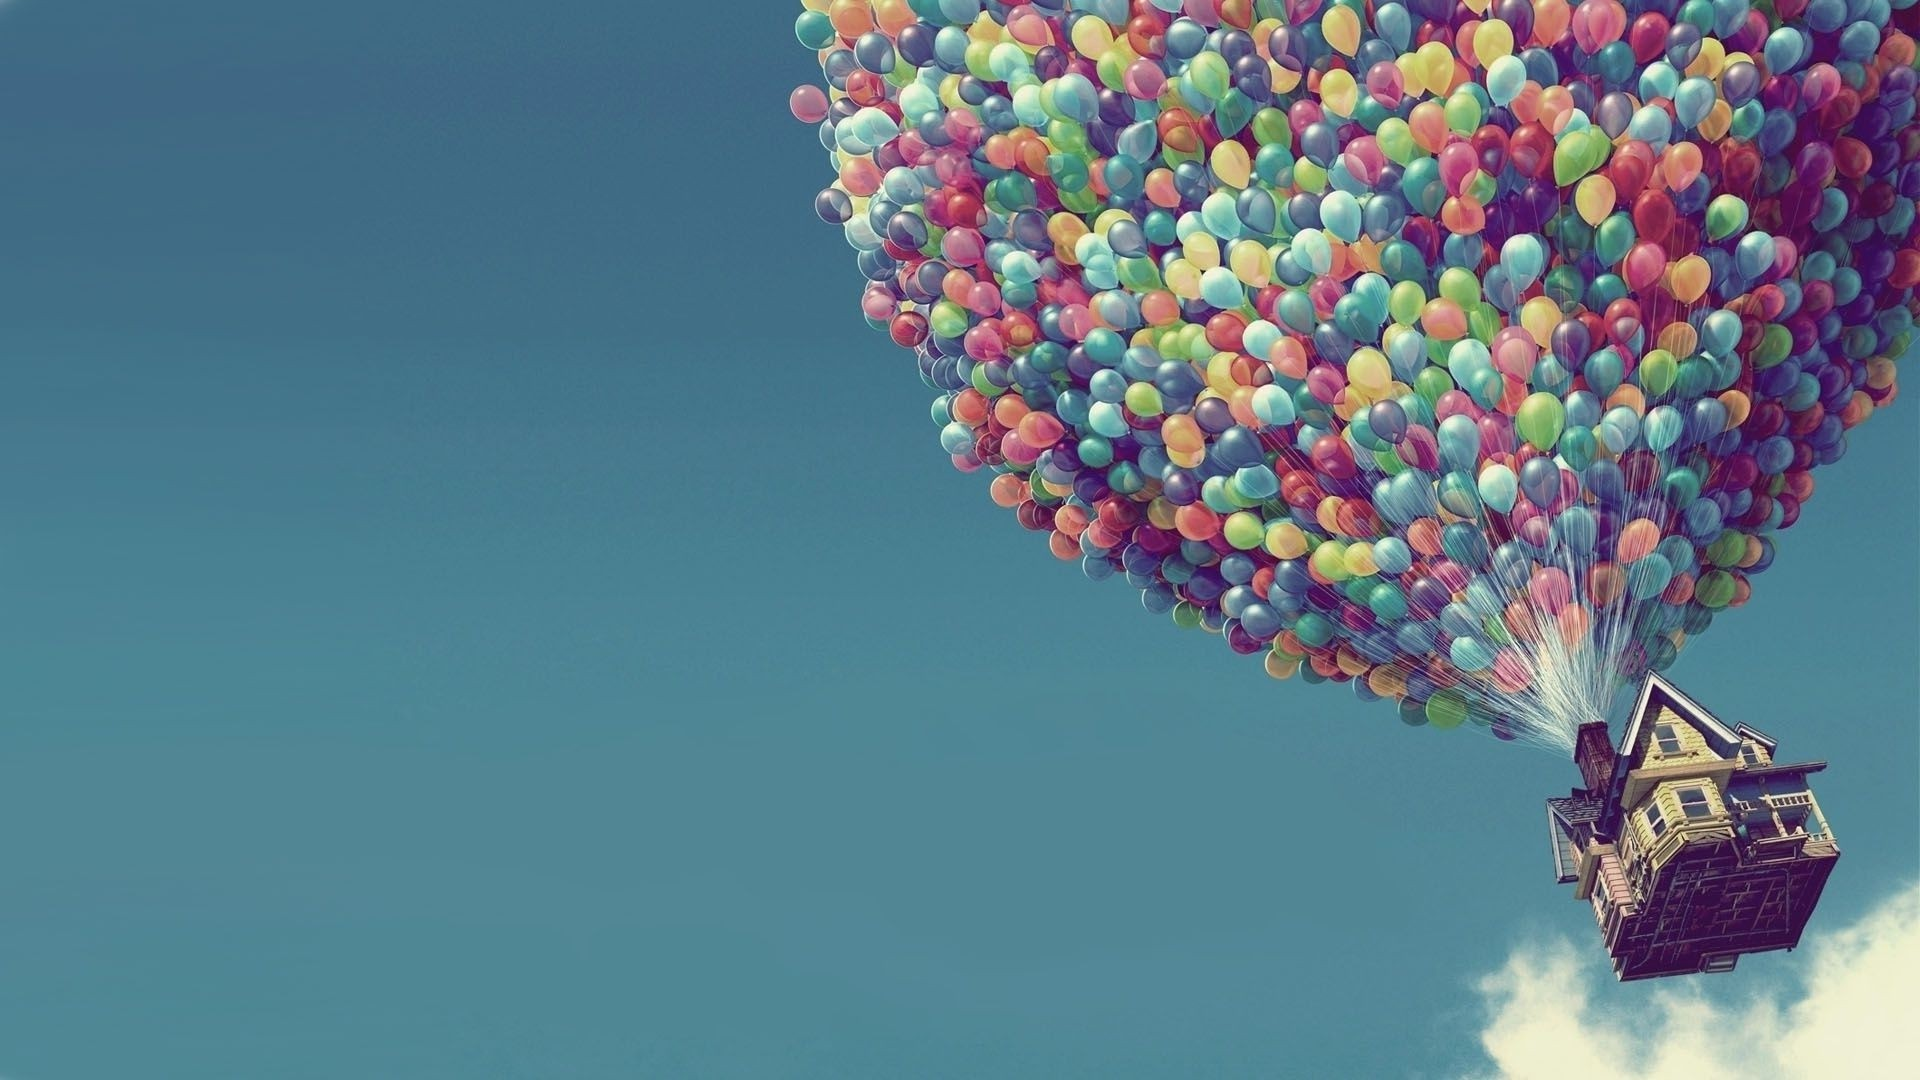 Balloon Wallpaper Picture hd